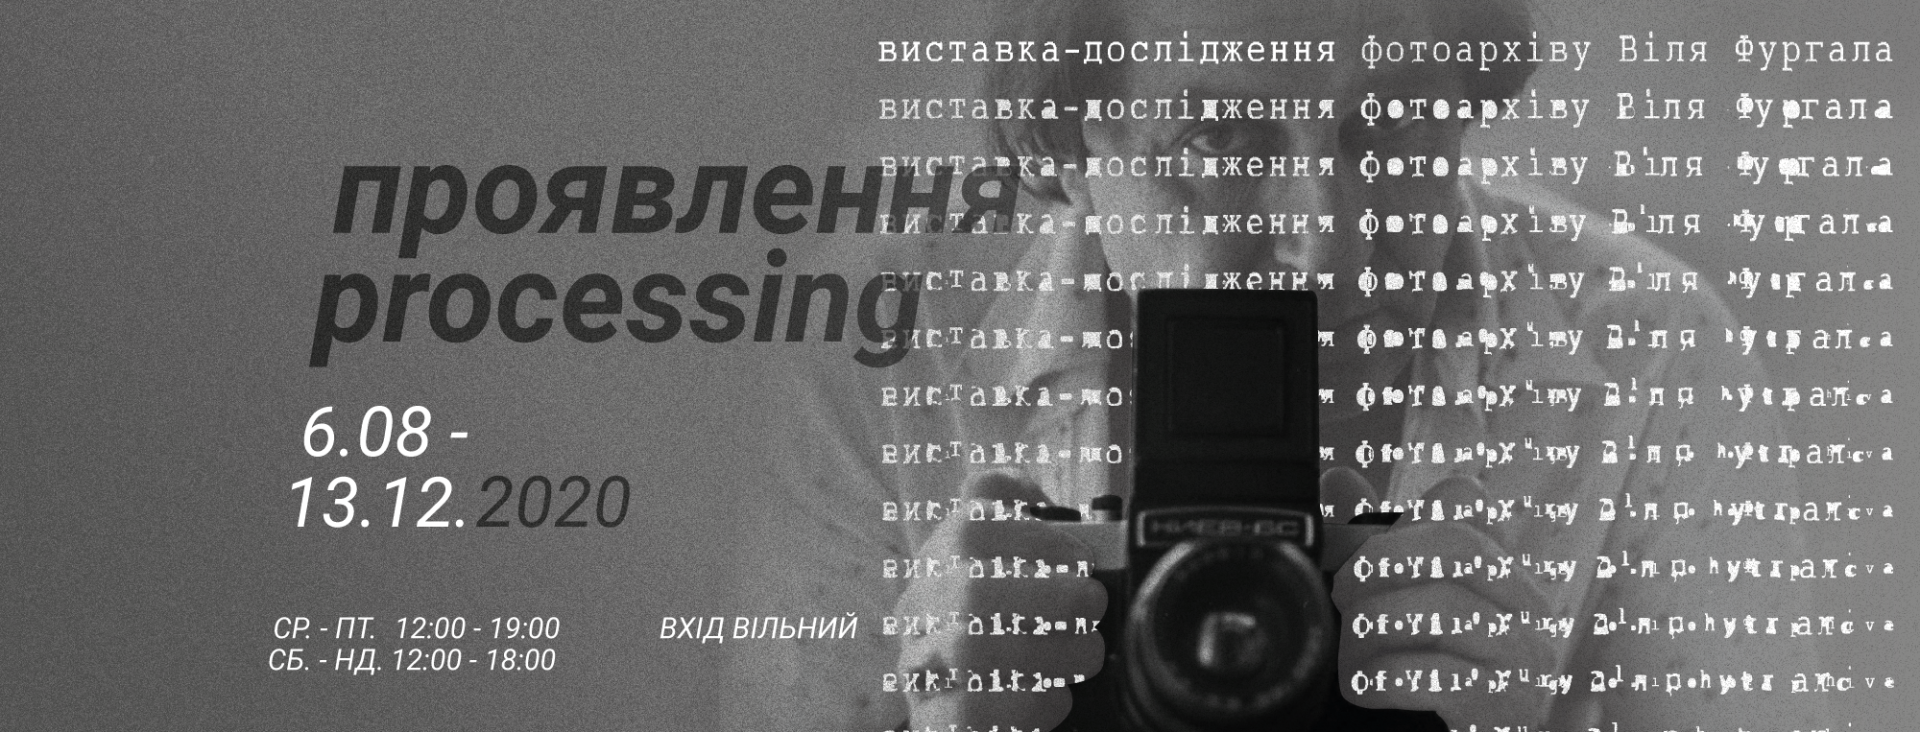 processing. exhibition-as-research of the Vil' Furgalo photo archive